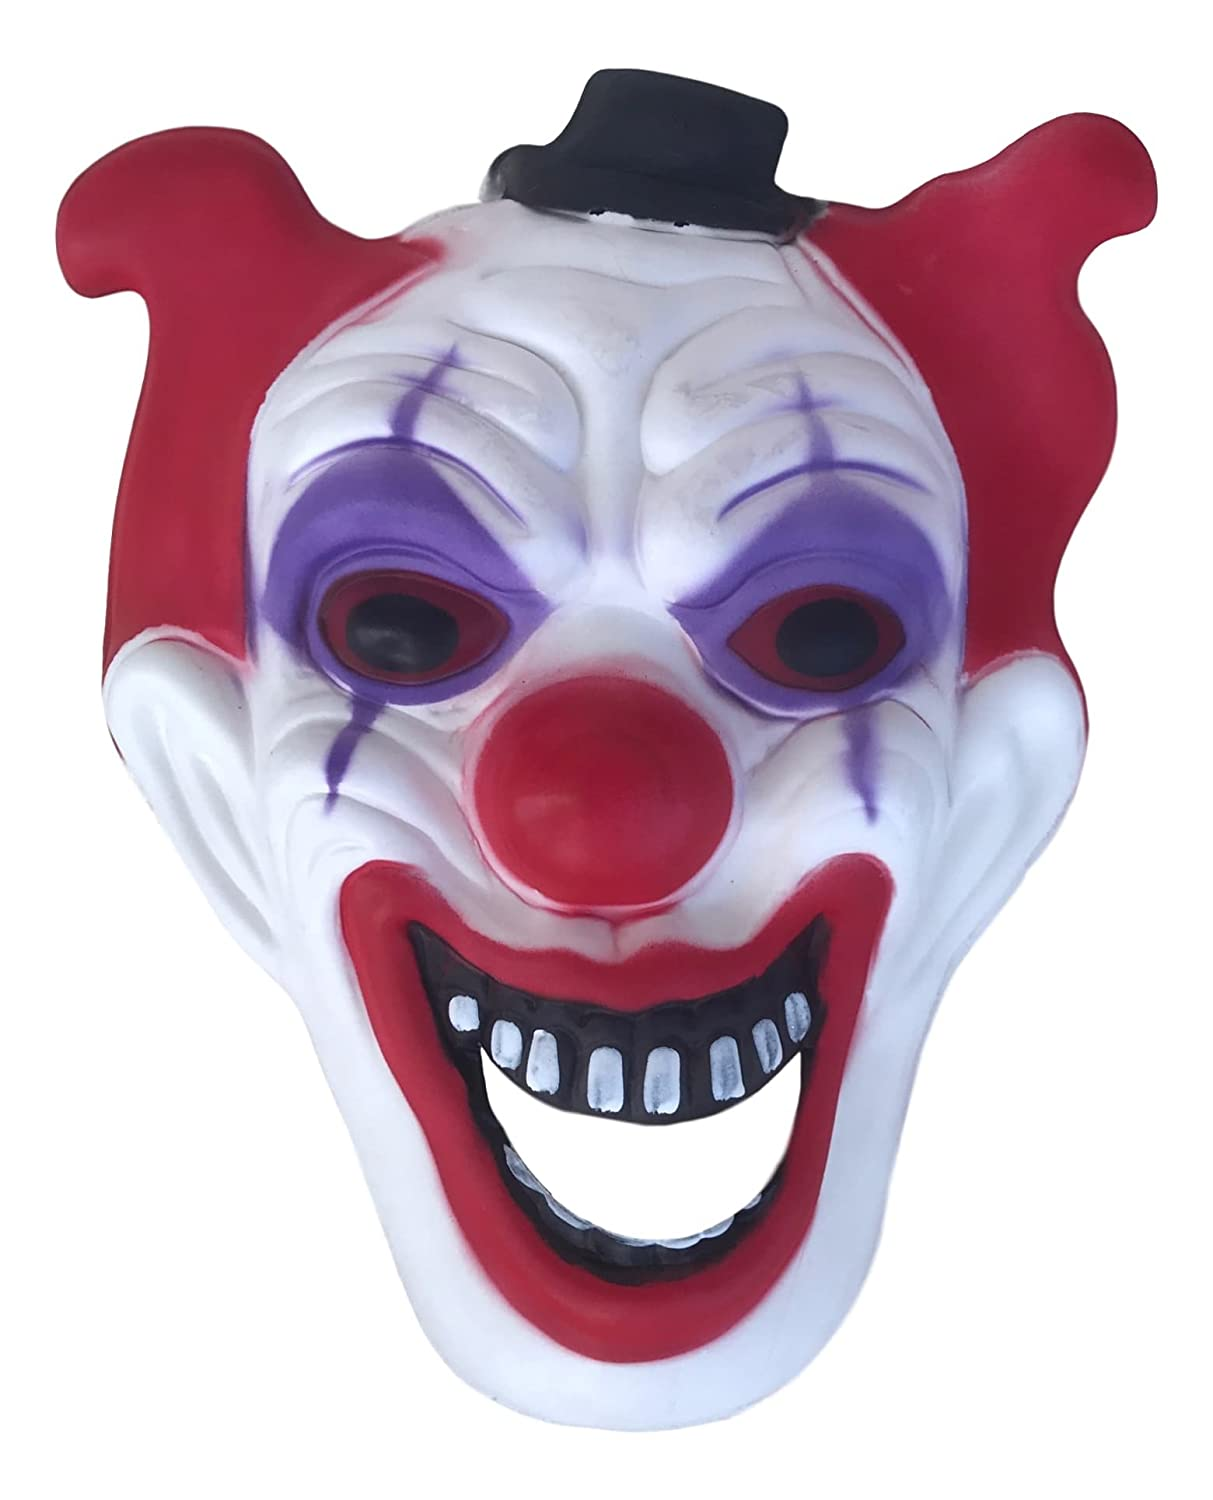 Jumbo Halloween Scary Crazy Clown Mask Red and Black